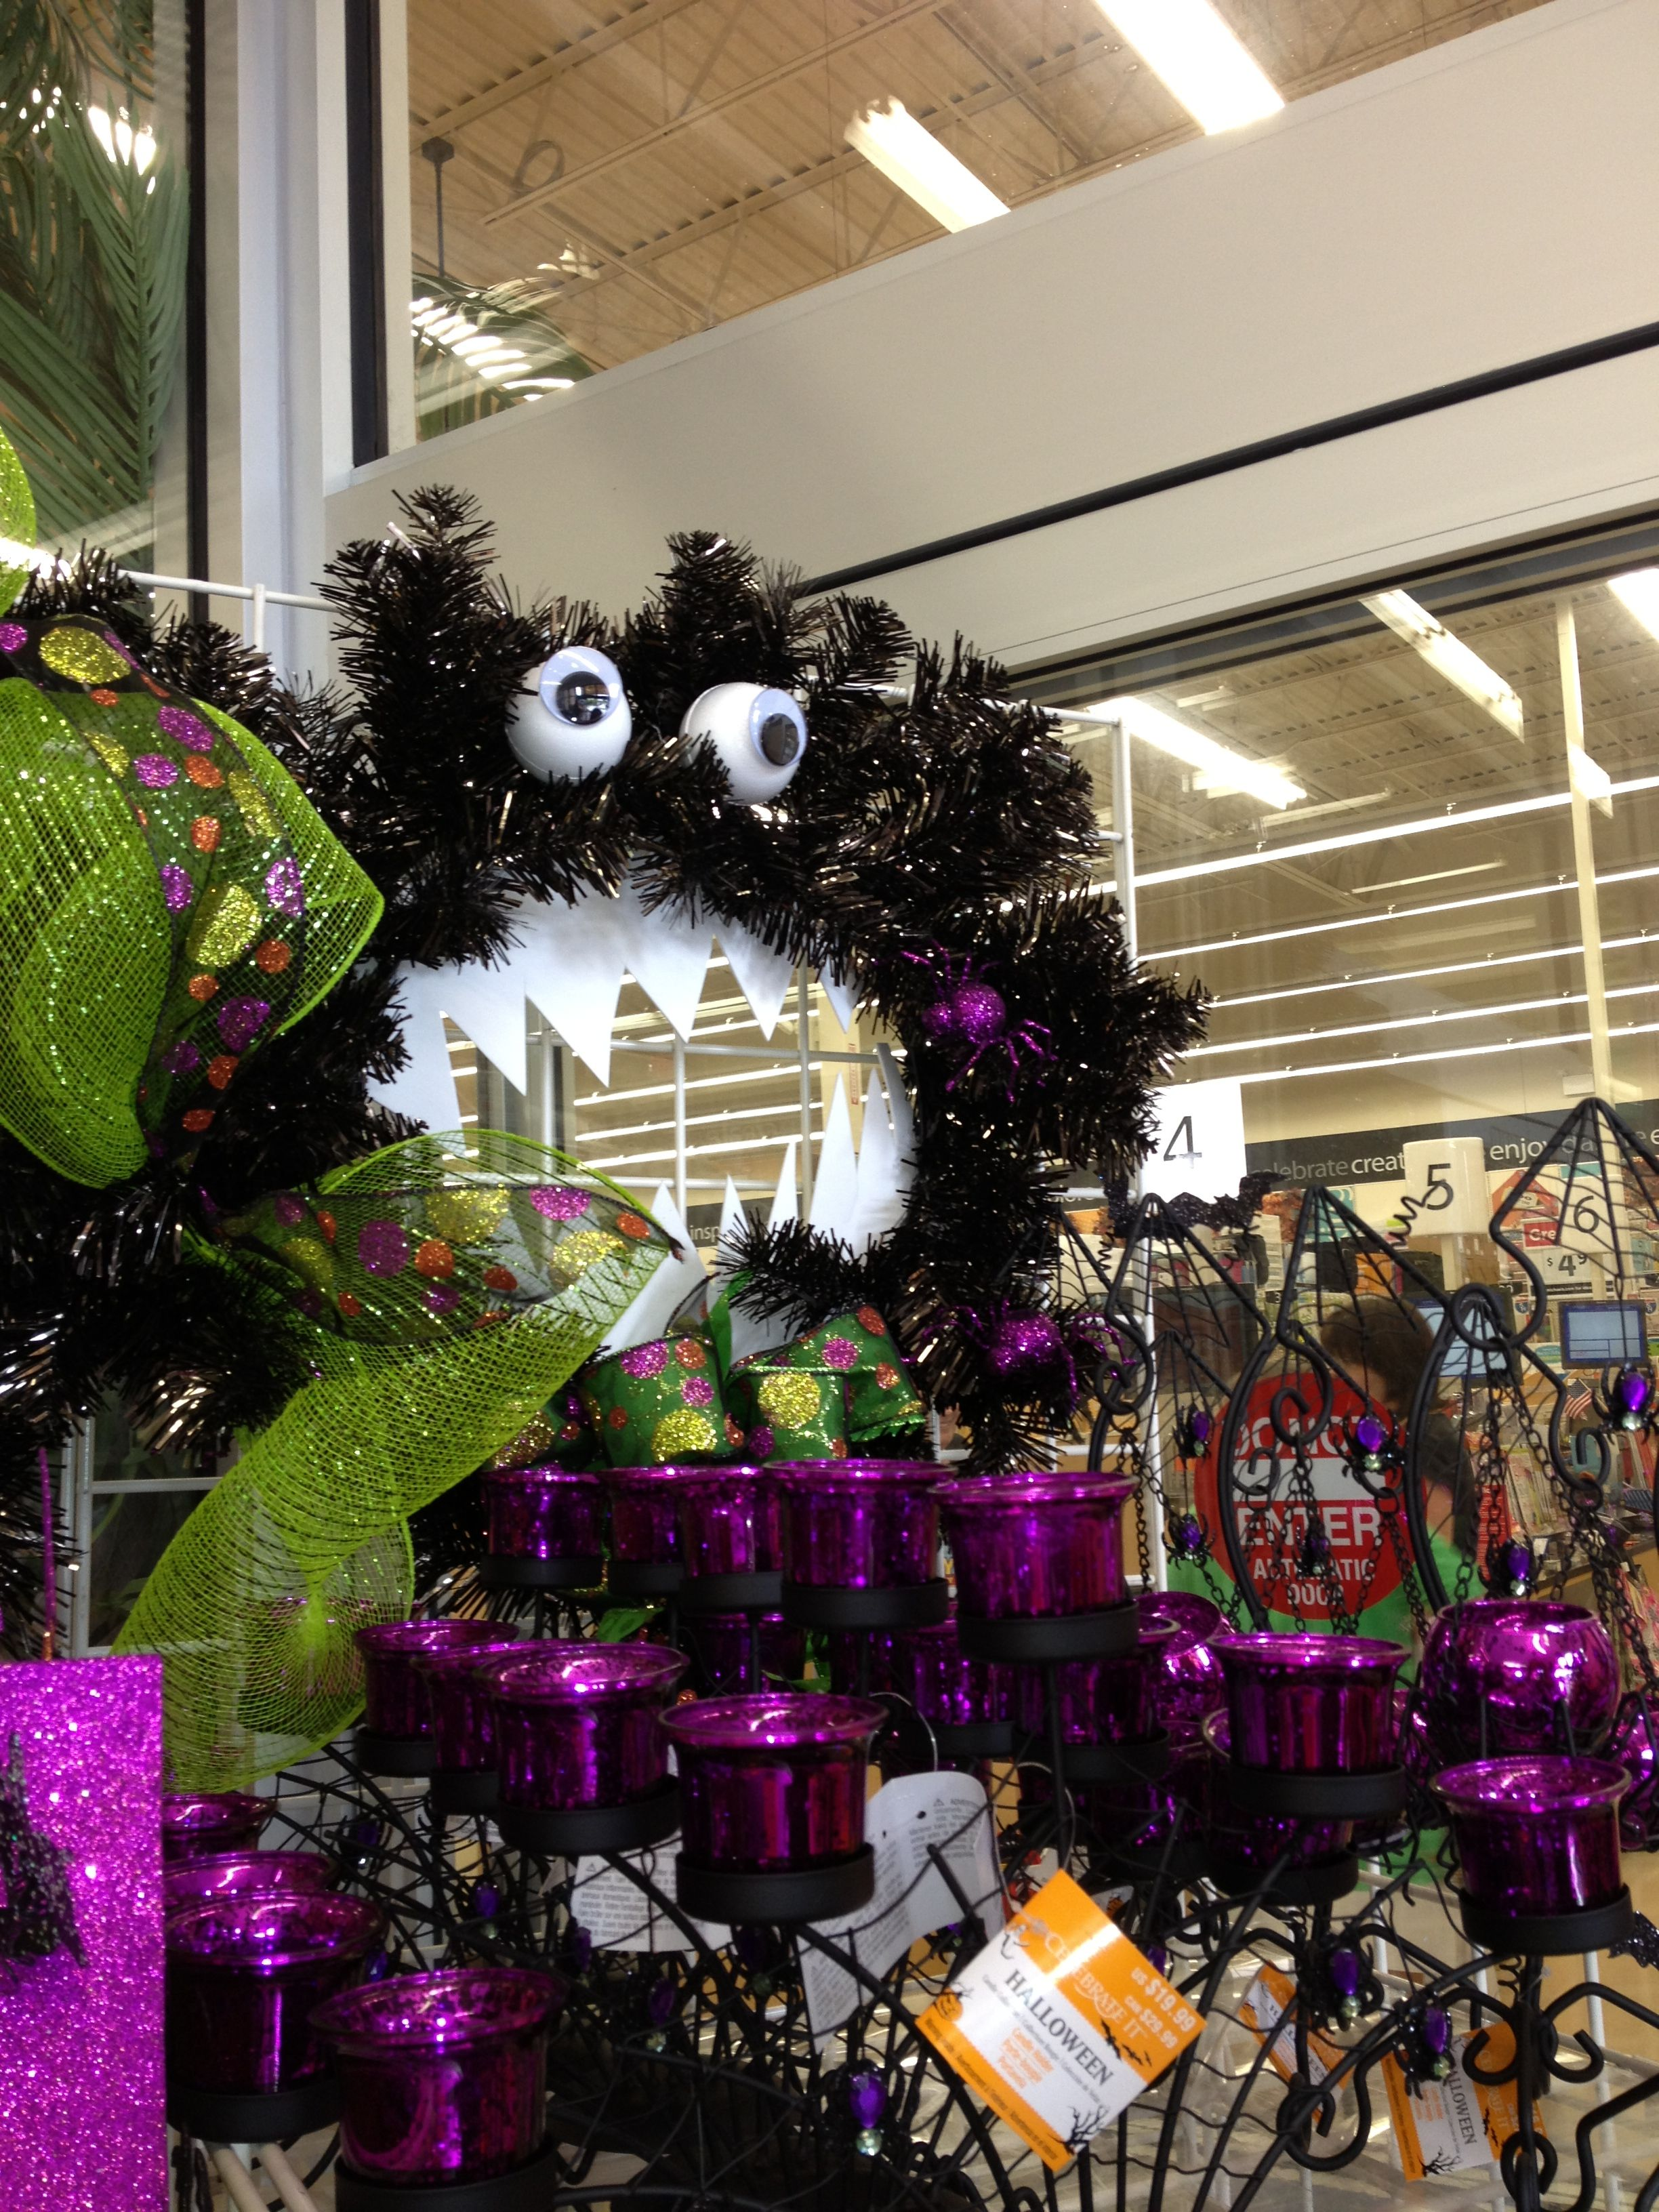 Adorable Halloween wreath seen in Michael's Arts & Craft